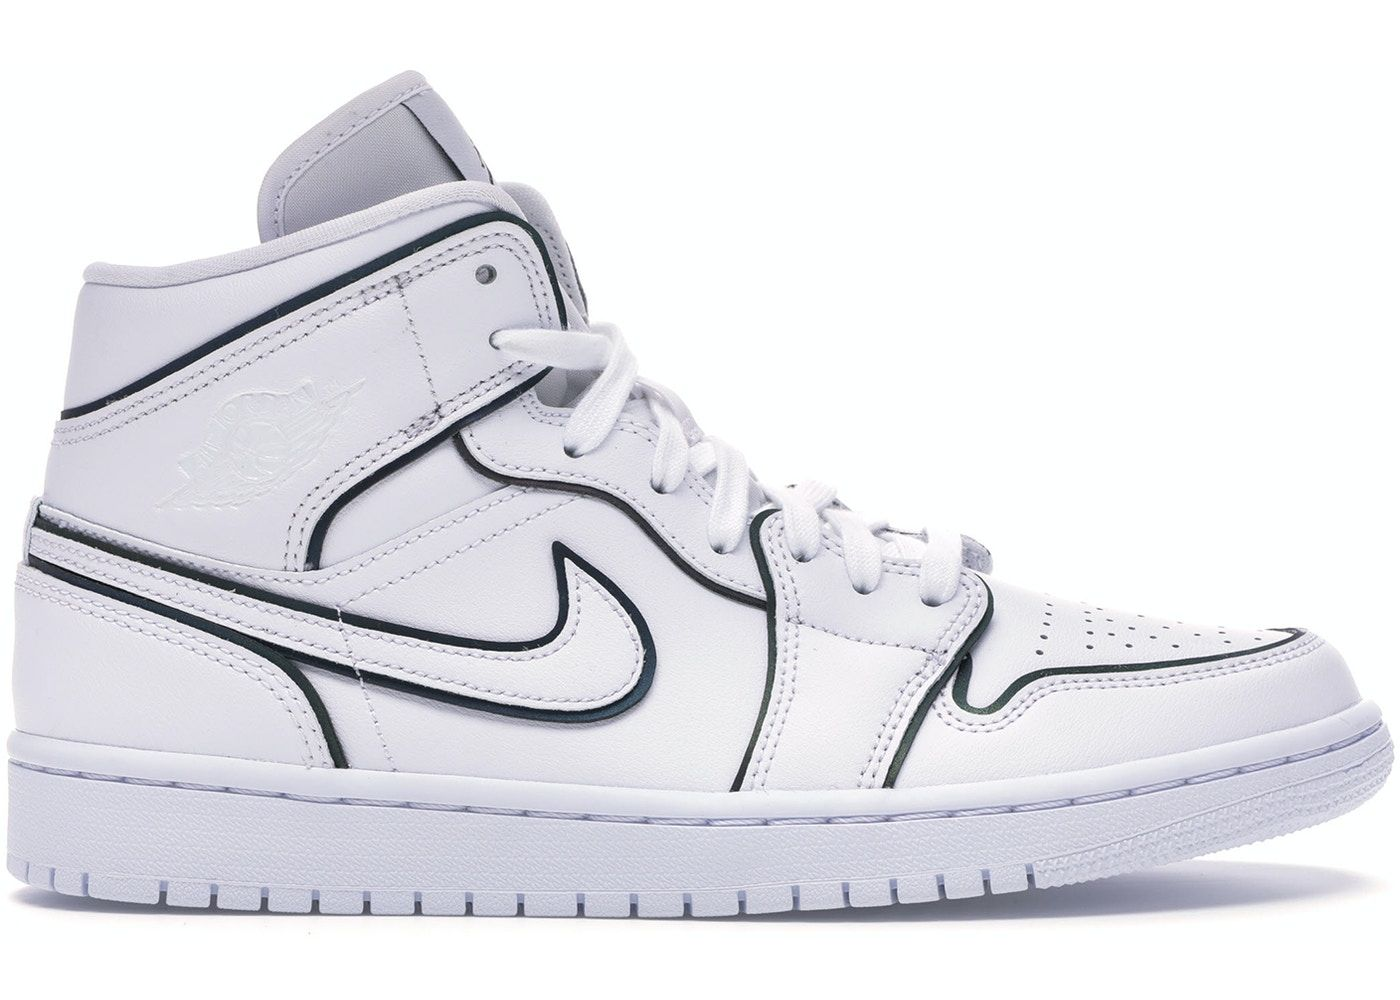 Jordan 1 Mid Iridescent Reflective White (W) in 2020 Air